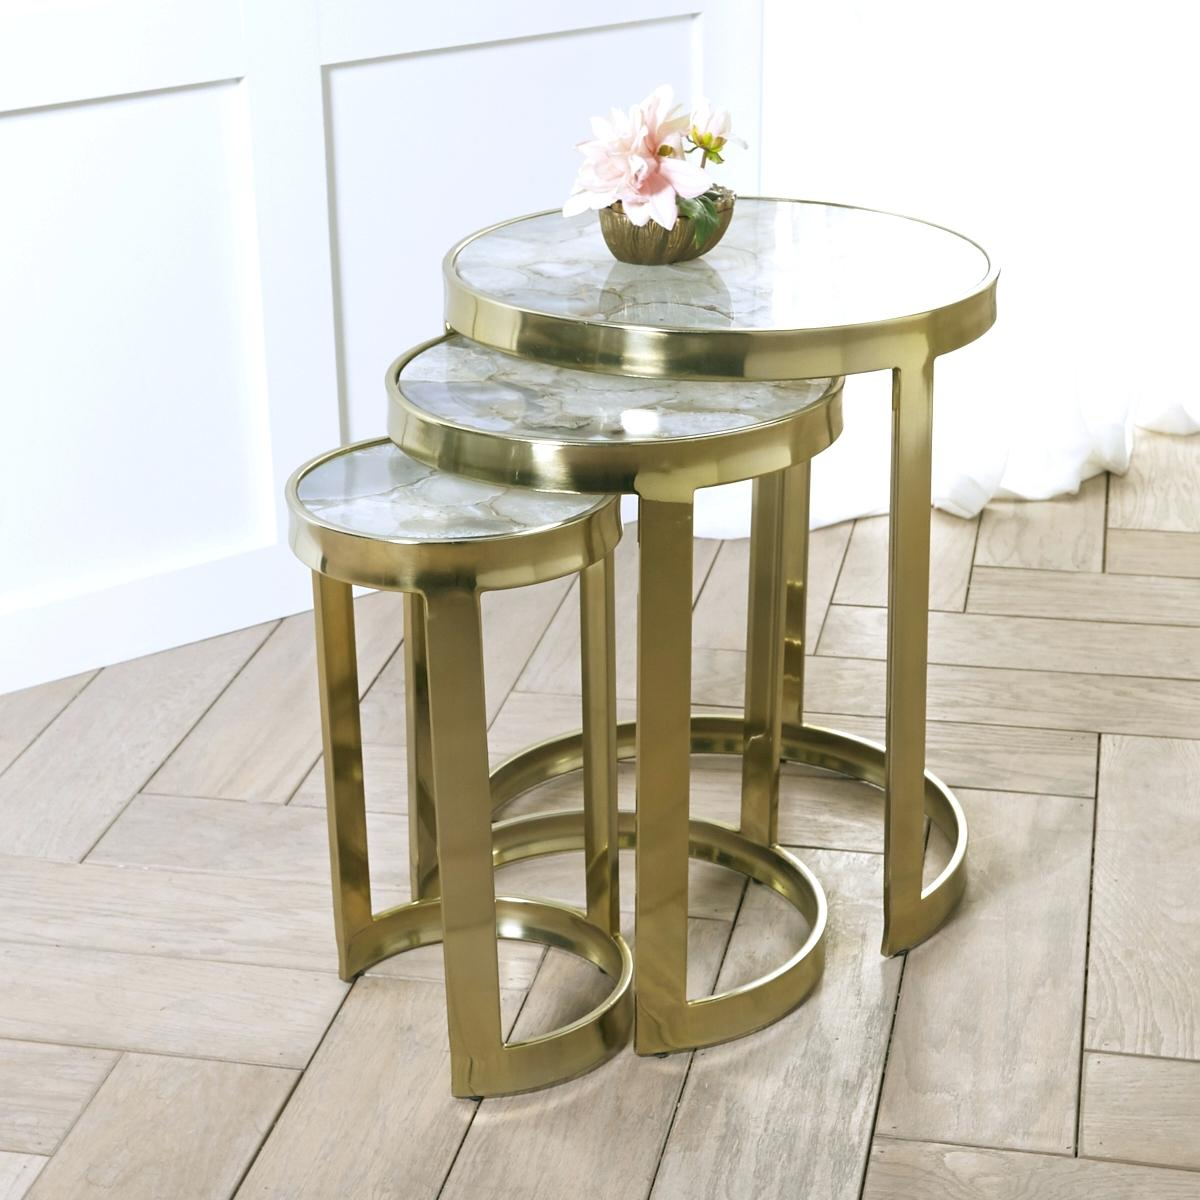 agate end table white natural round side with nickel wisteria nesting tables set top delhi accent wooden garden marble dining room leather sectional large tilting patio umbrella